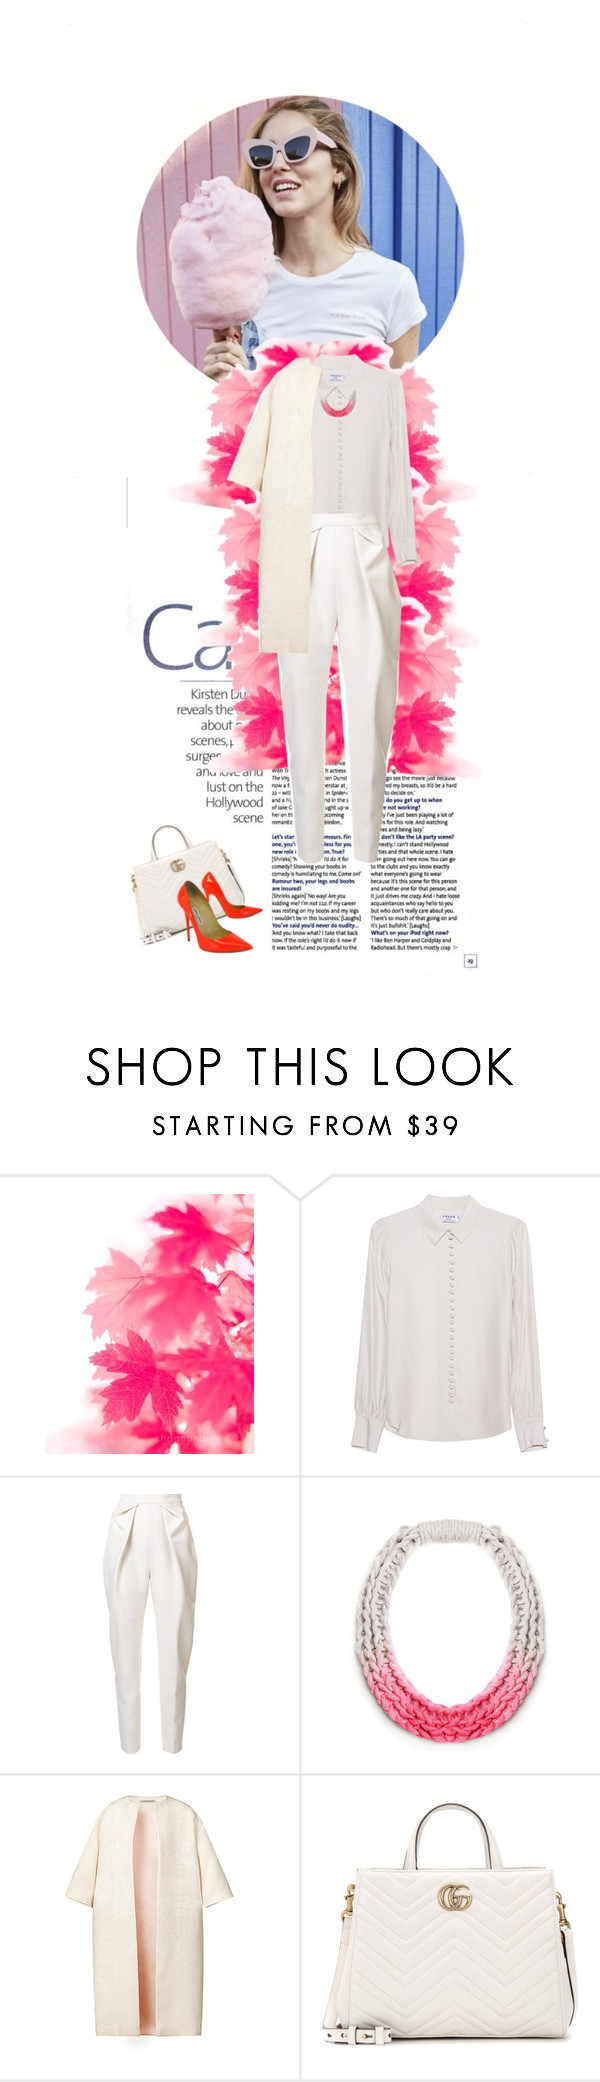 """""""All White"""" by doris-knezevic ❤ liked on Polyvore featuring Frame Denim, Delpozo, Saloukee, Esme Vie, Gucci and Jimmy Choo"""